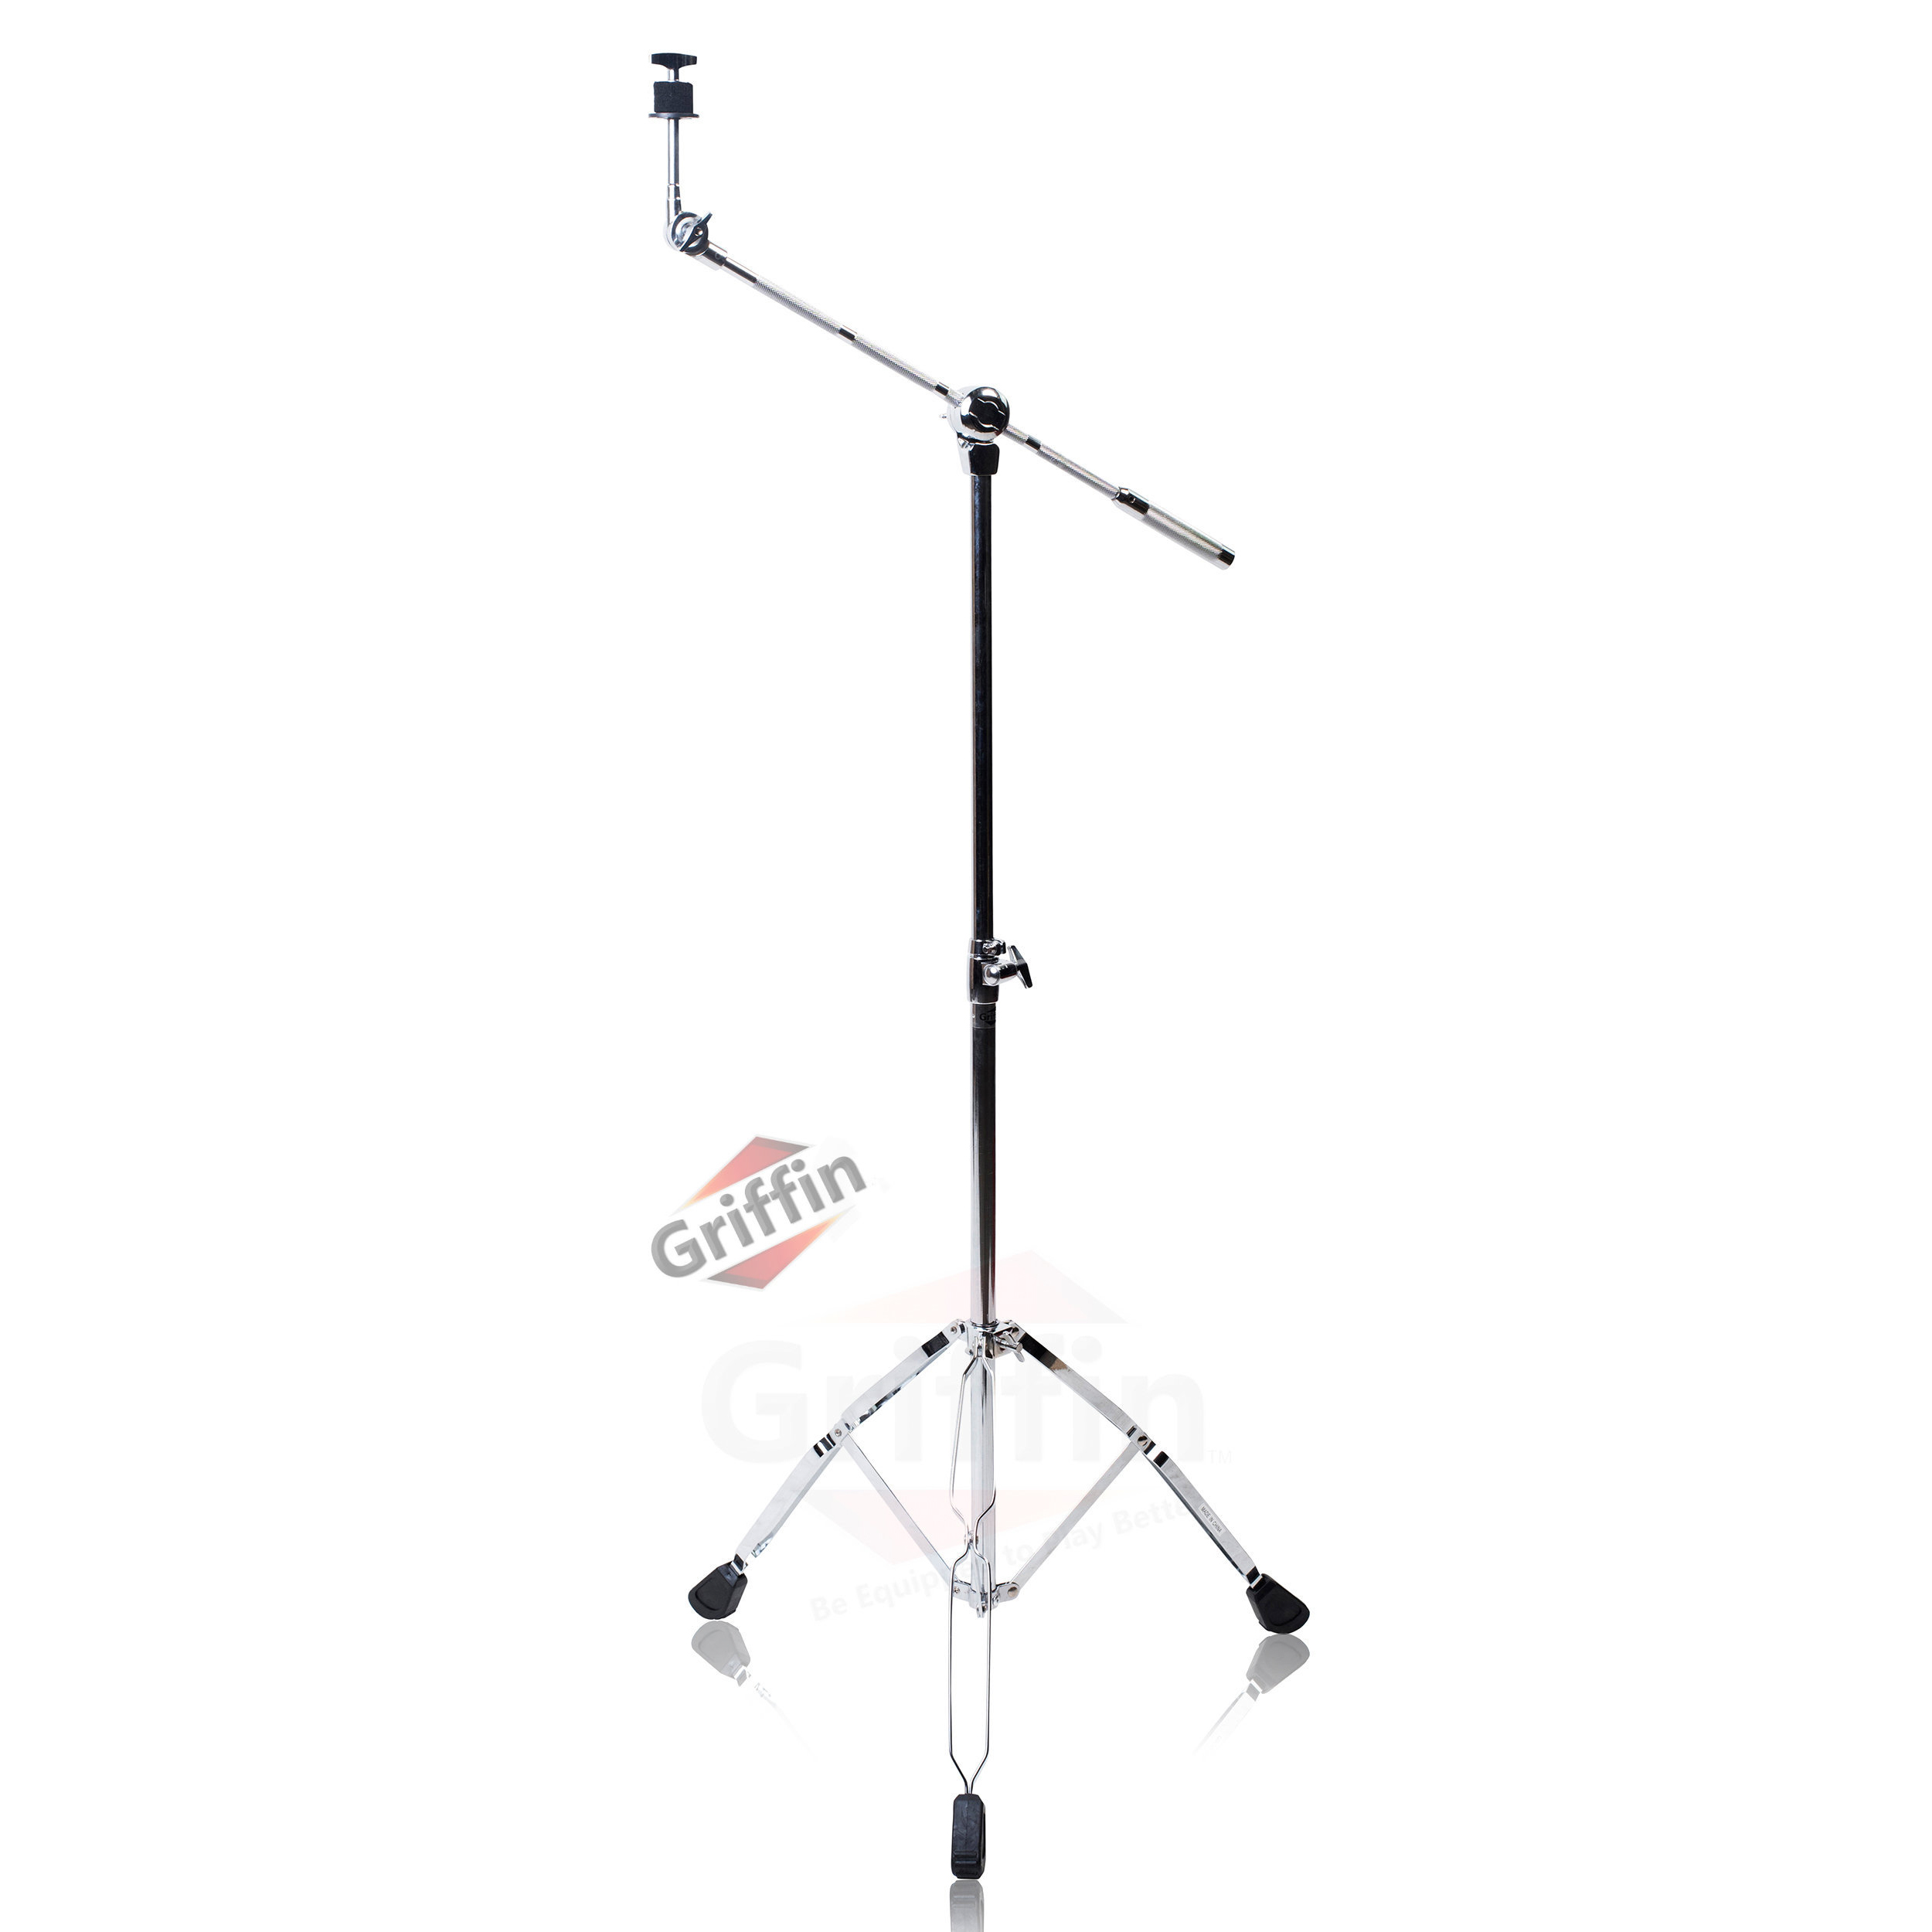 Cymbal Boom Stand by Griffin | Double Braced Drum Percussion Gear Hardware Set | Adjustable Height|Arm Holder With Counterweight Adapter for Mounting Heavy Duty Weight Crash and Ride Cymbals For Drummers